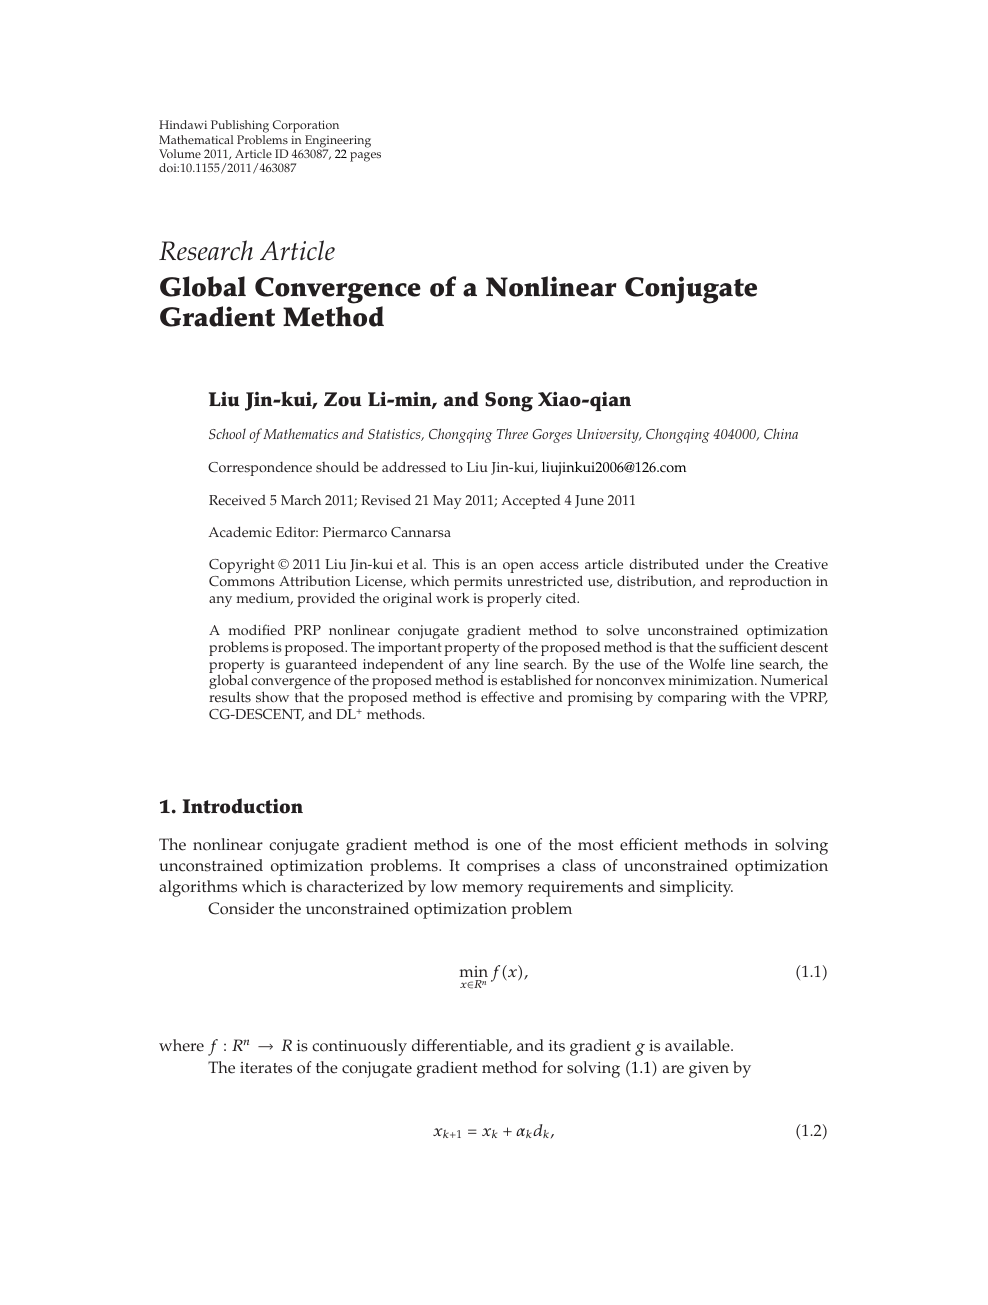 Global Convergence of a Nonlinear Conjugate Gradient Method